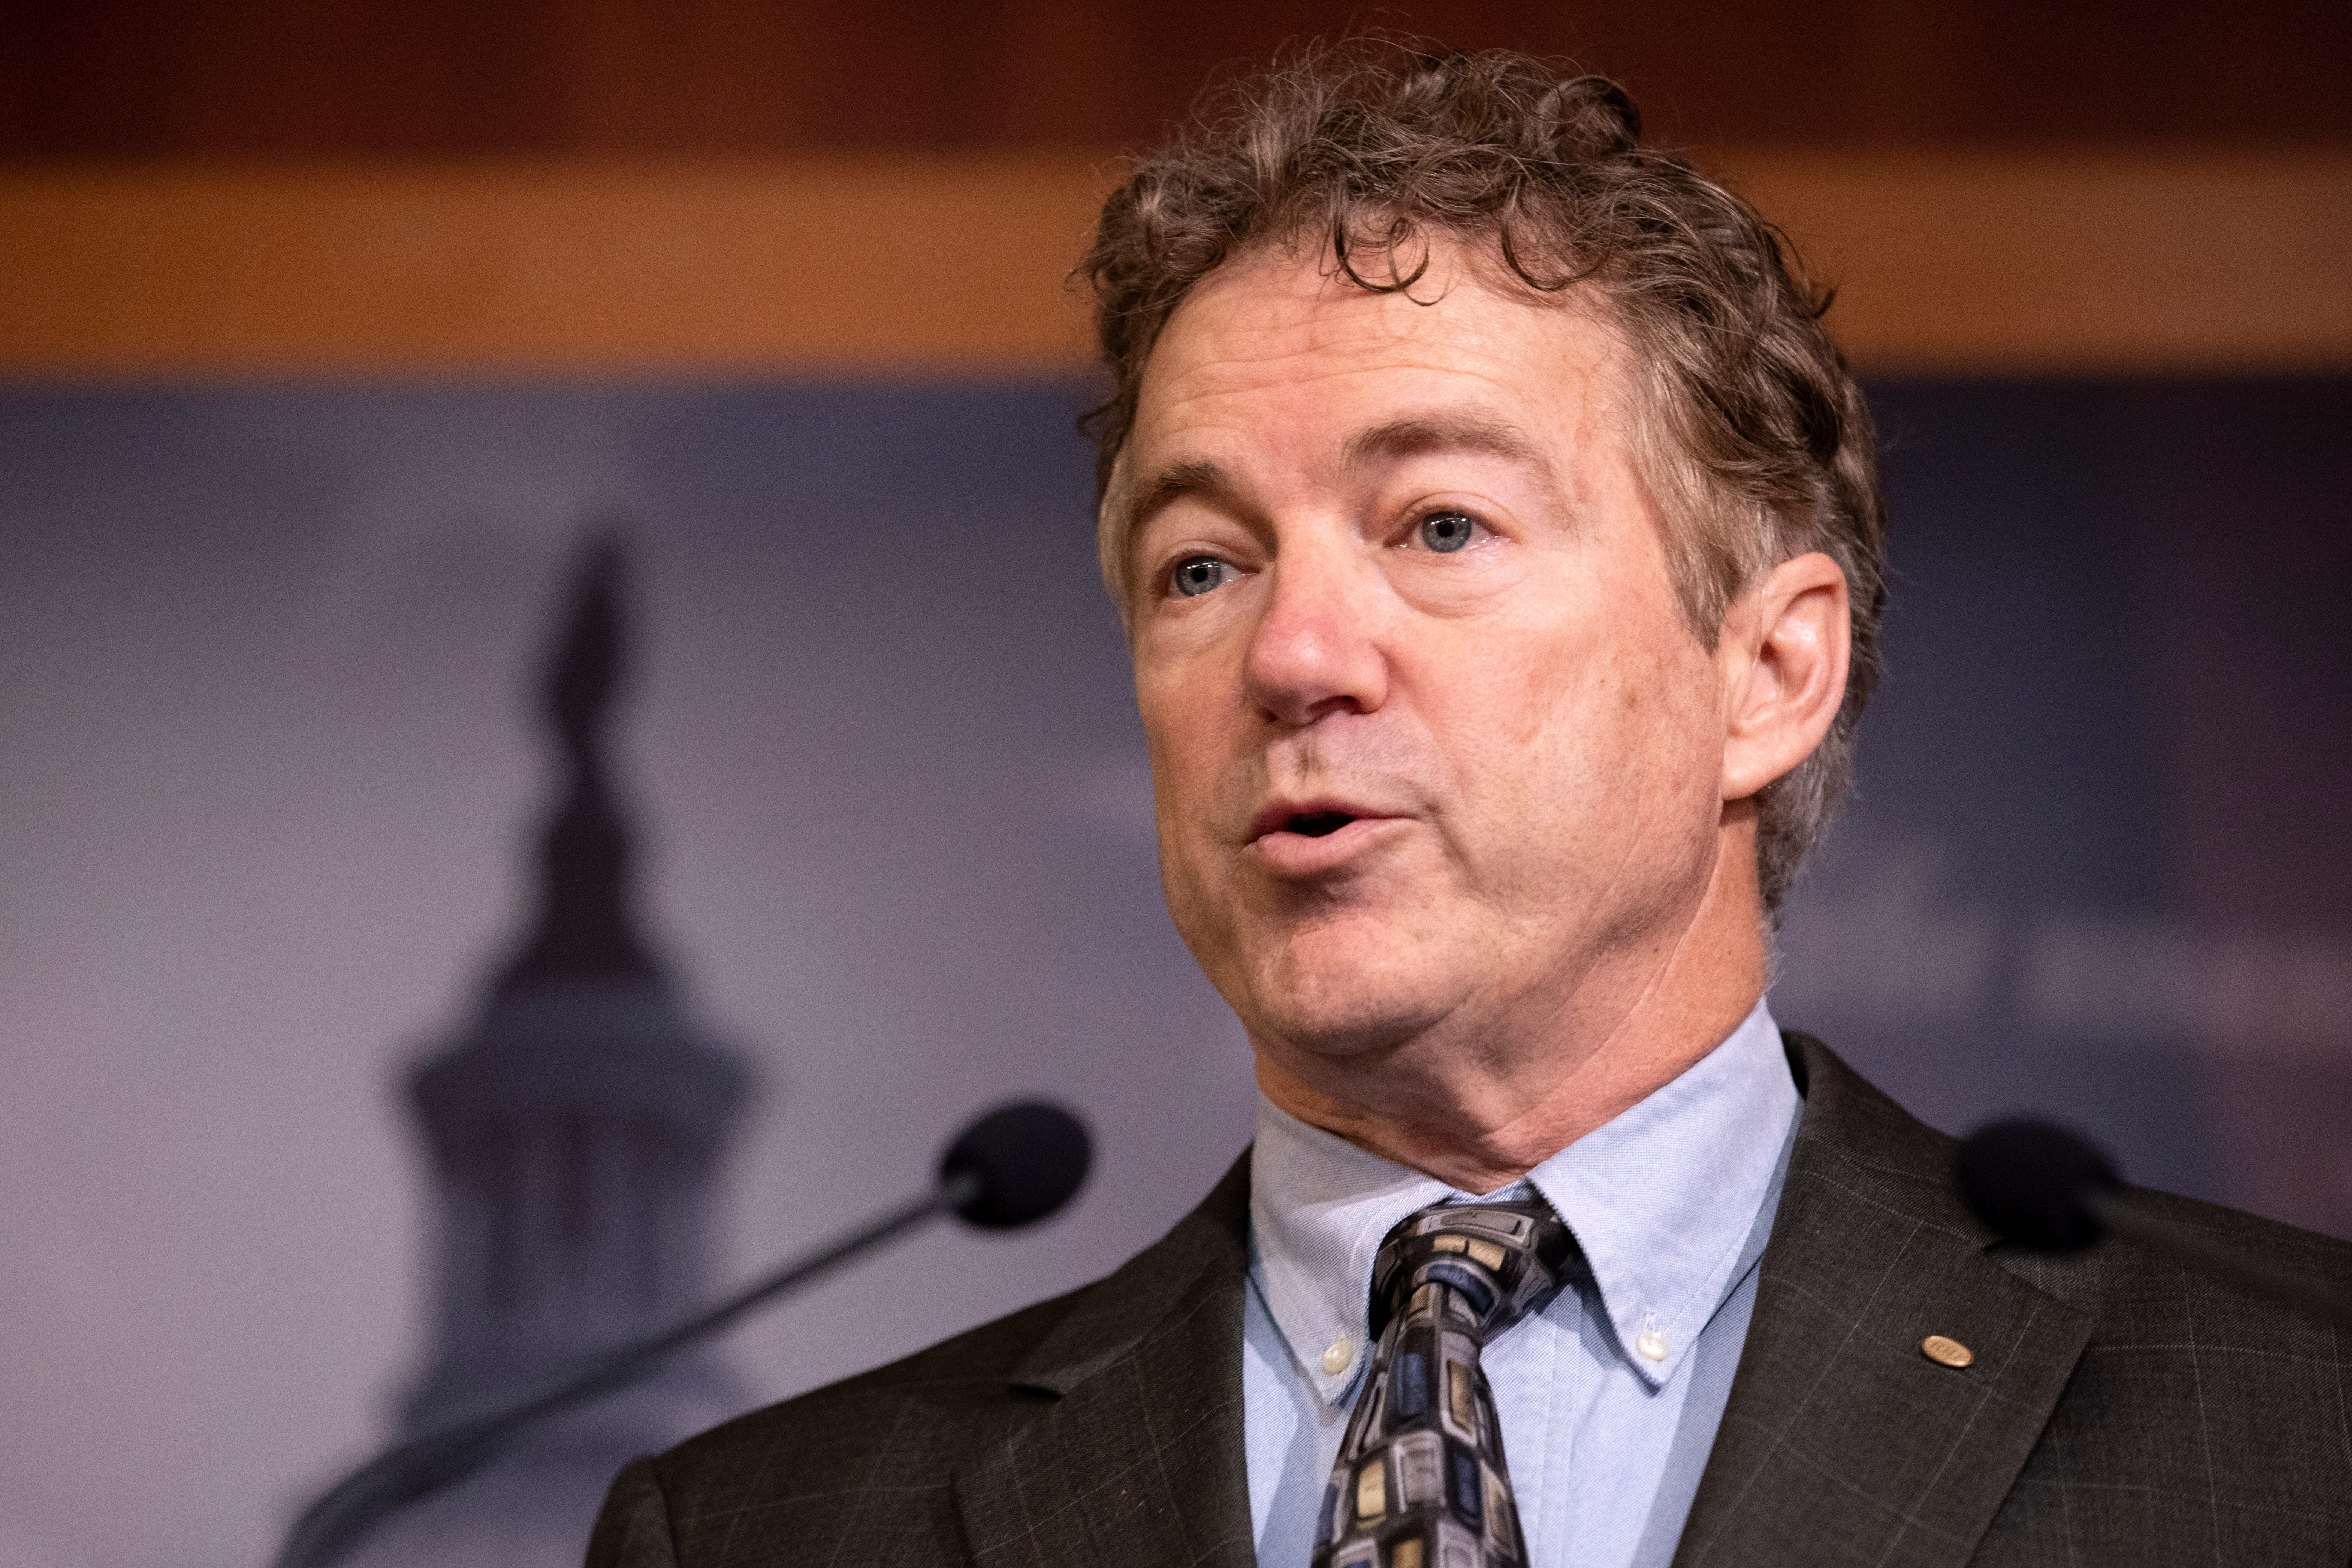 Rand Paul, first senator with coronavirus, attended fundraiser with 3 others who tested positive